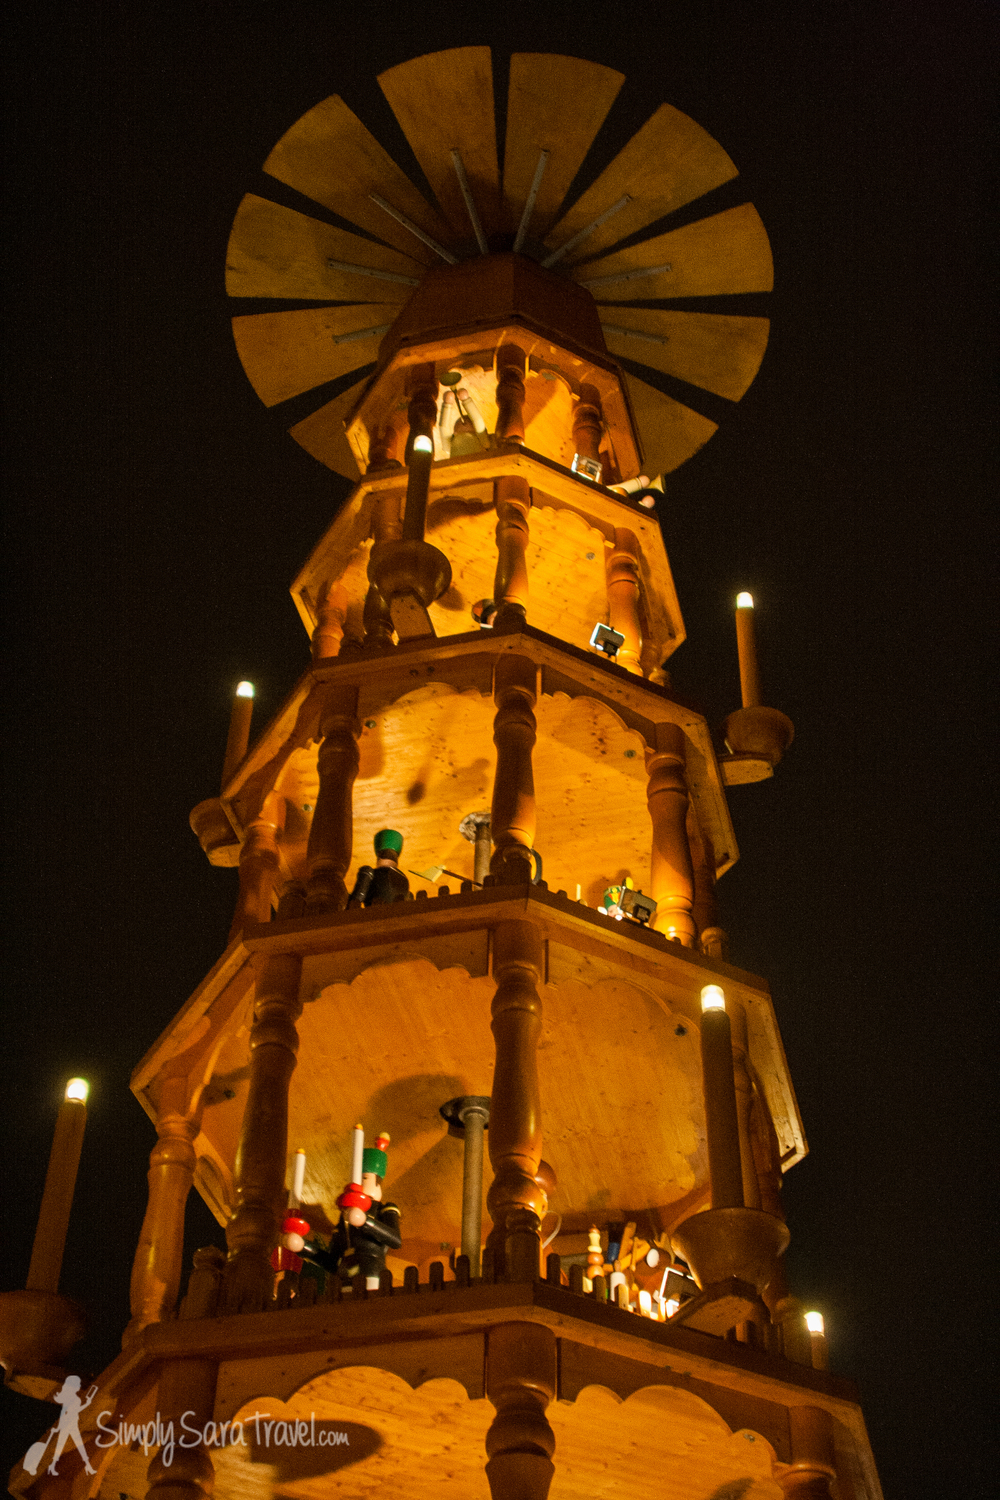 A look at the giant Christmas pyramid in Dresden. It depicts the Nativity as well as people from the Ore mountains (where it was made).